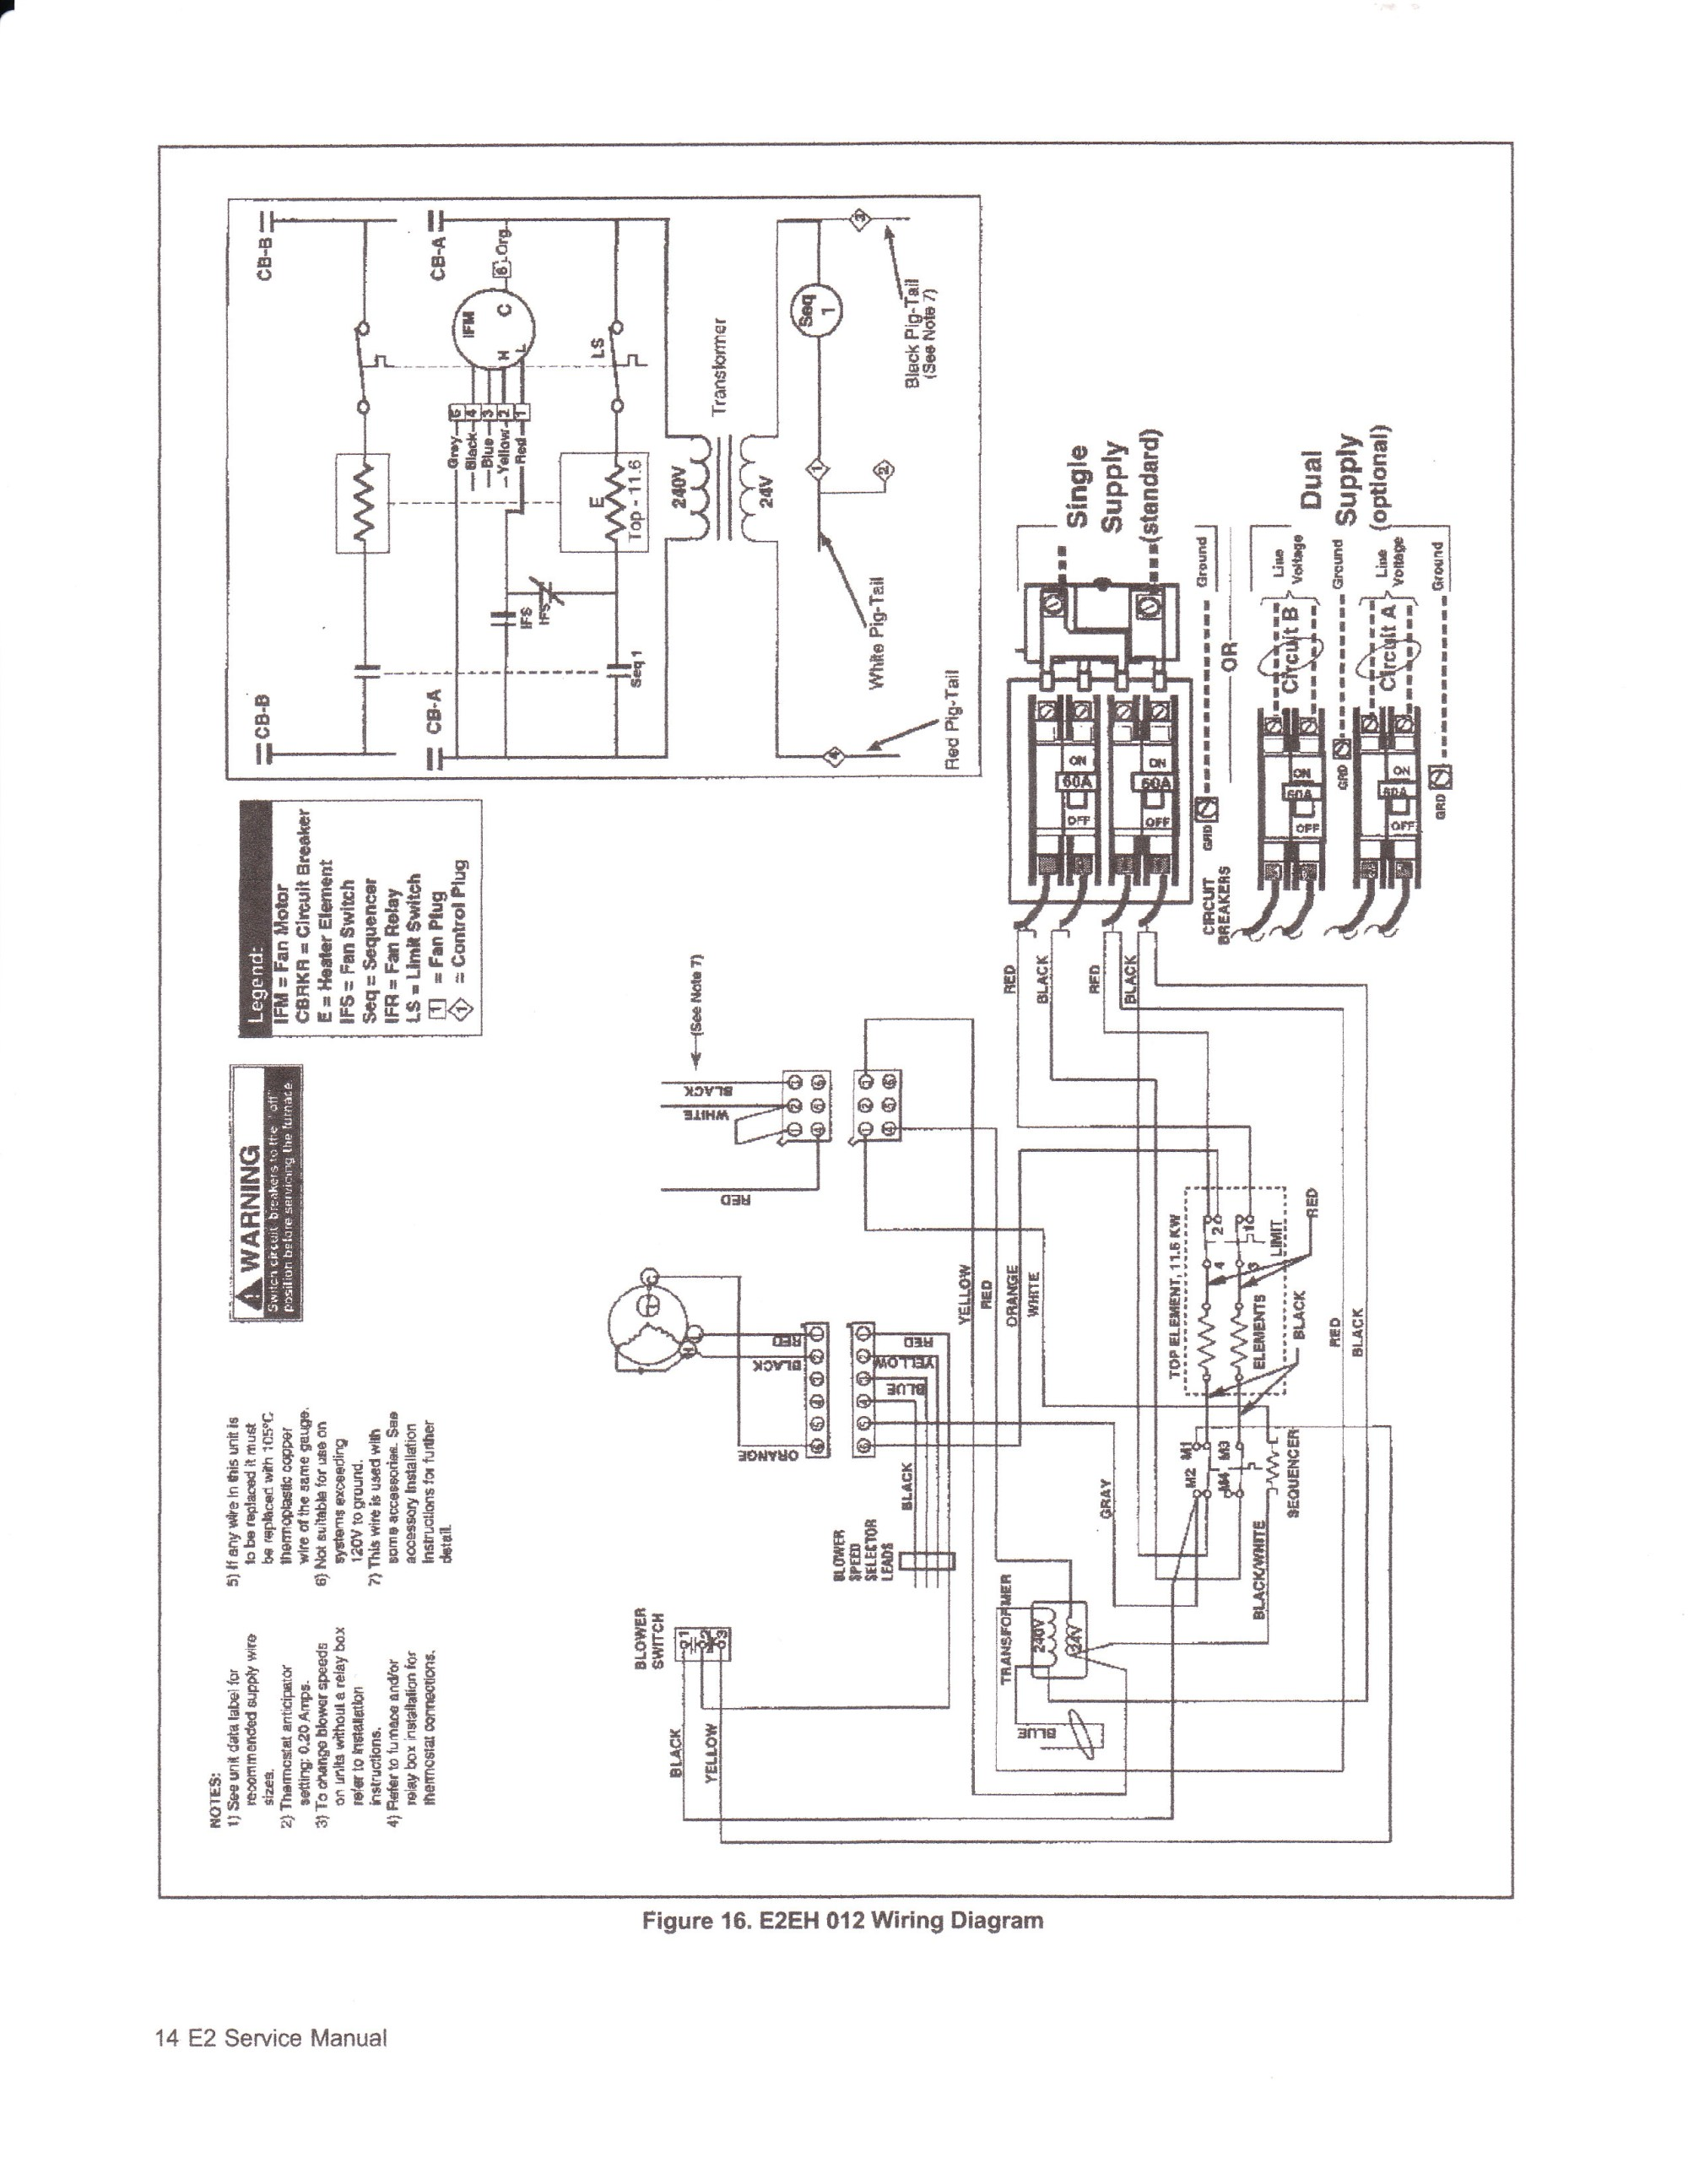 hight resolution of old nordyne furnaces wiring diagram image wiring diagram review gibson gas furnace wiring